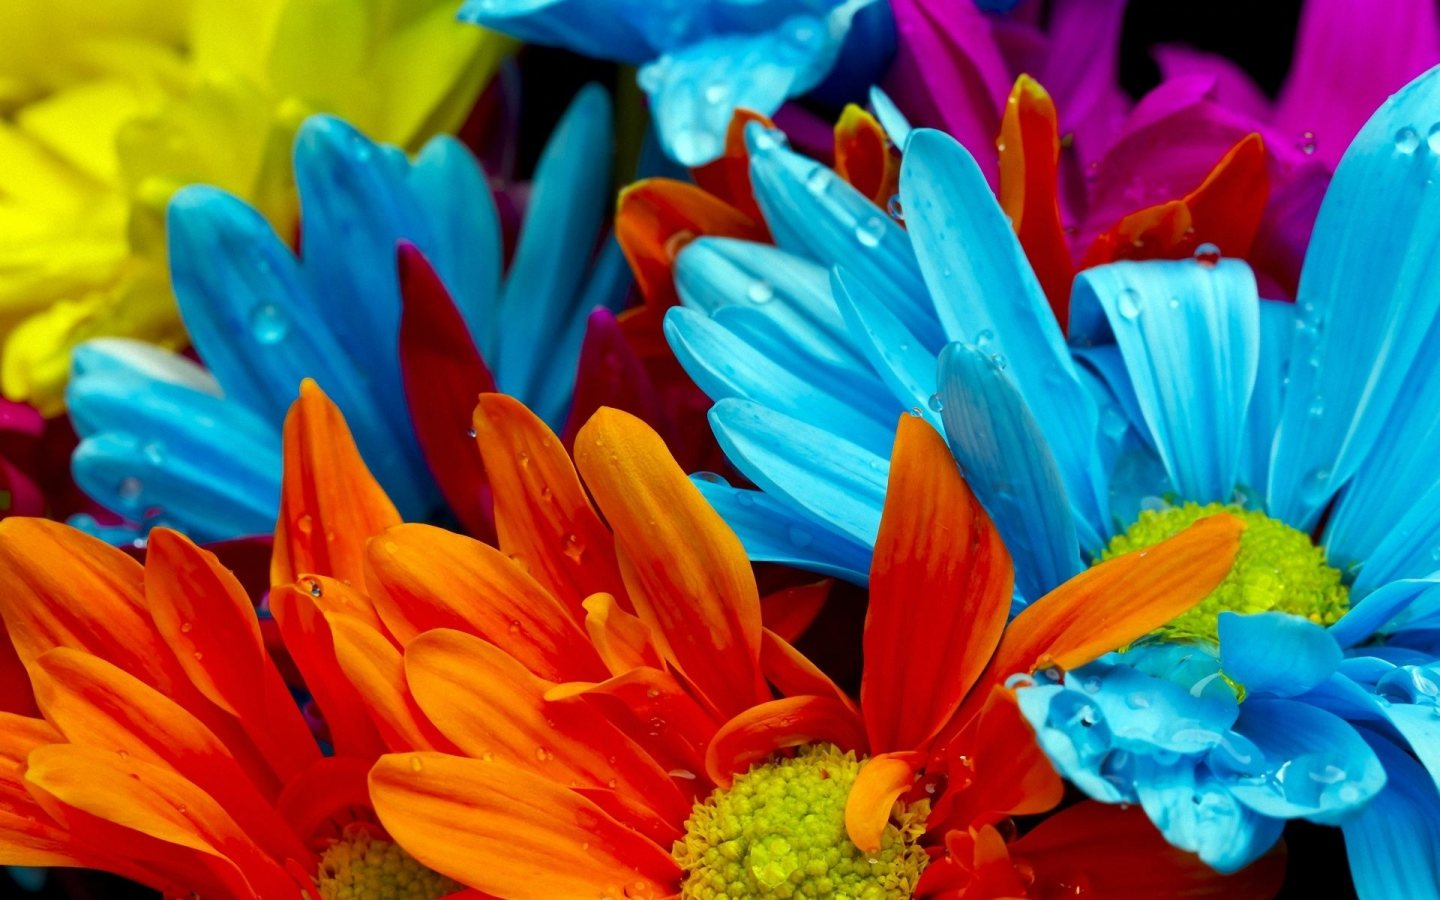 Free Colorful Flower Desktop Wallpaper: Awesome Colorful Wallpaper